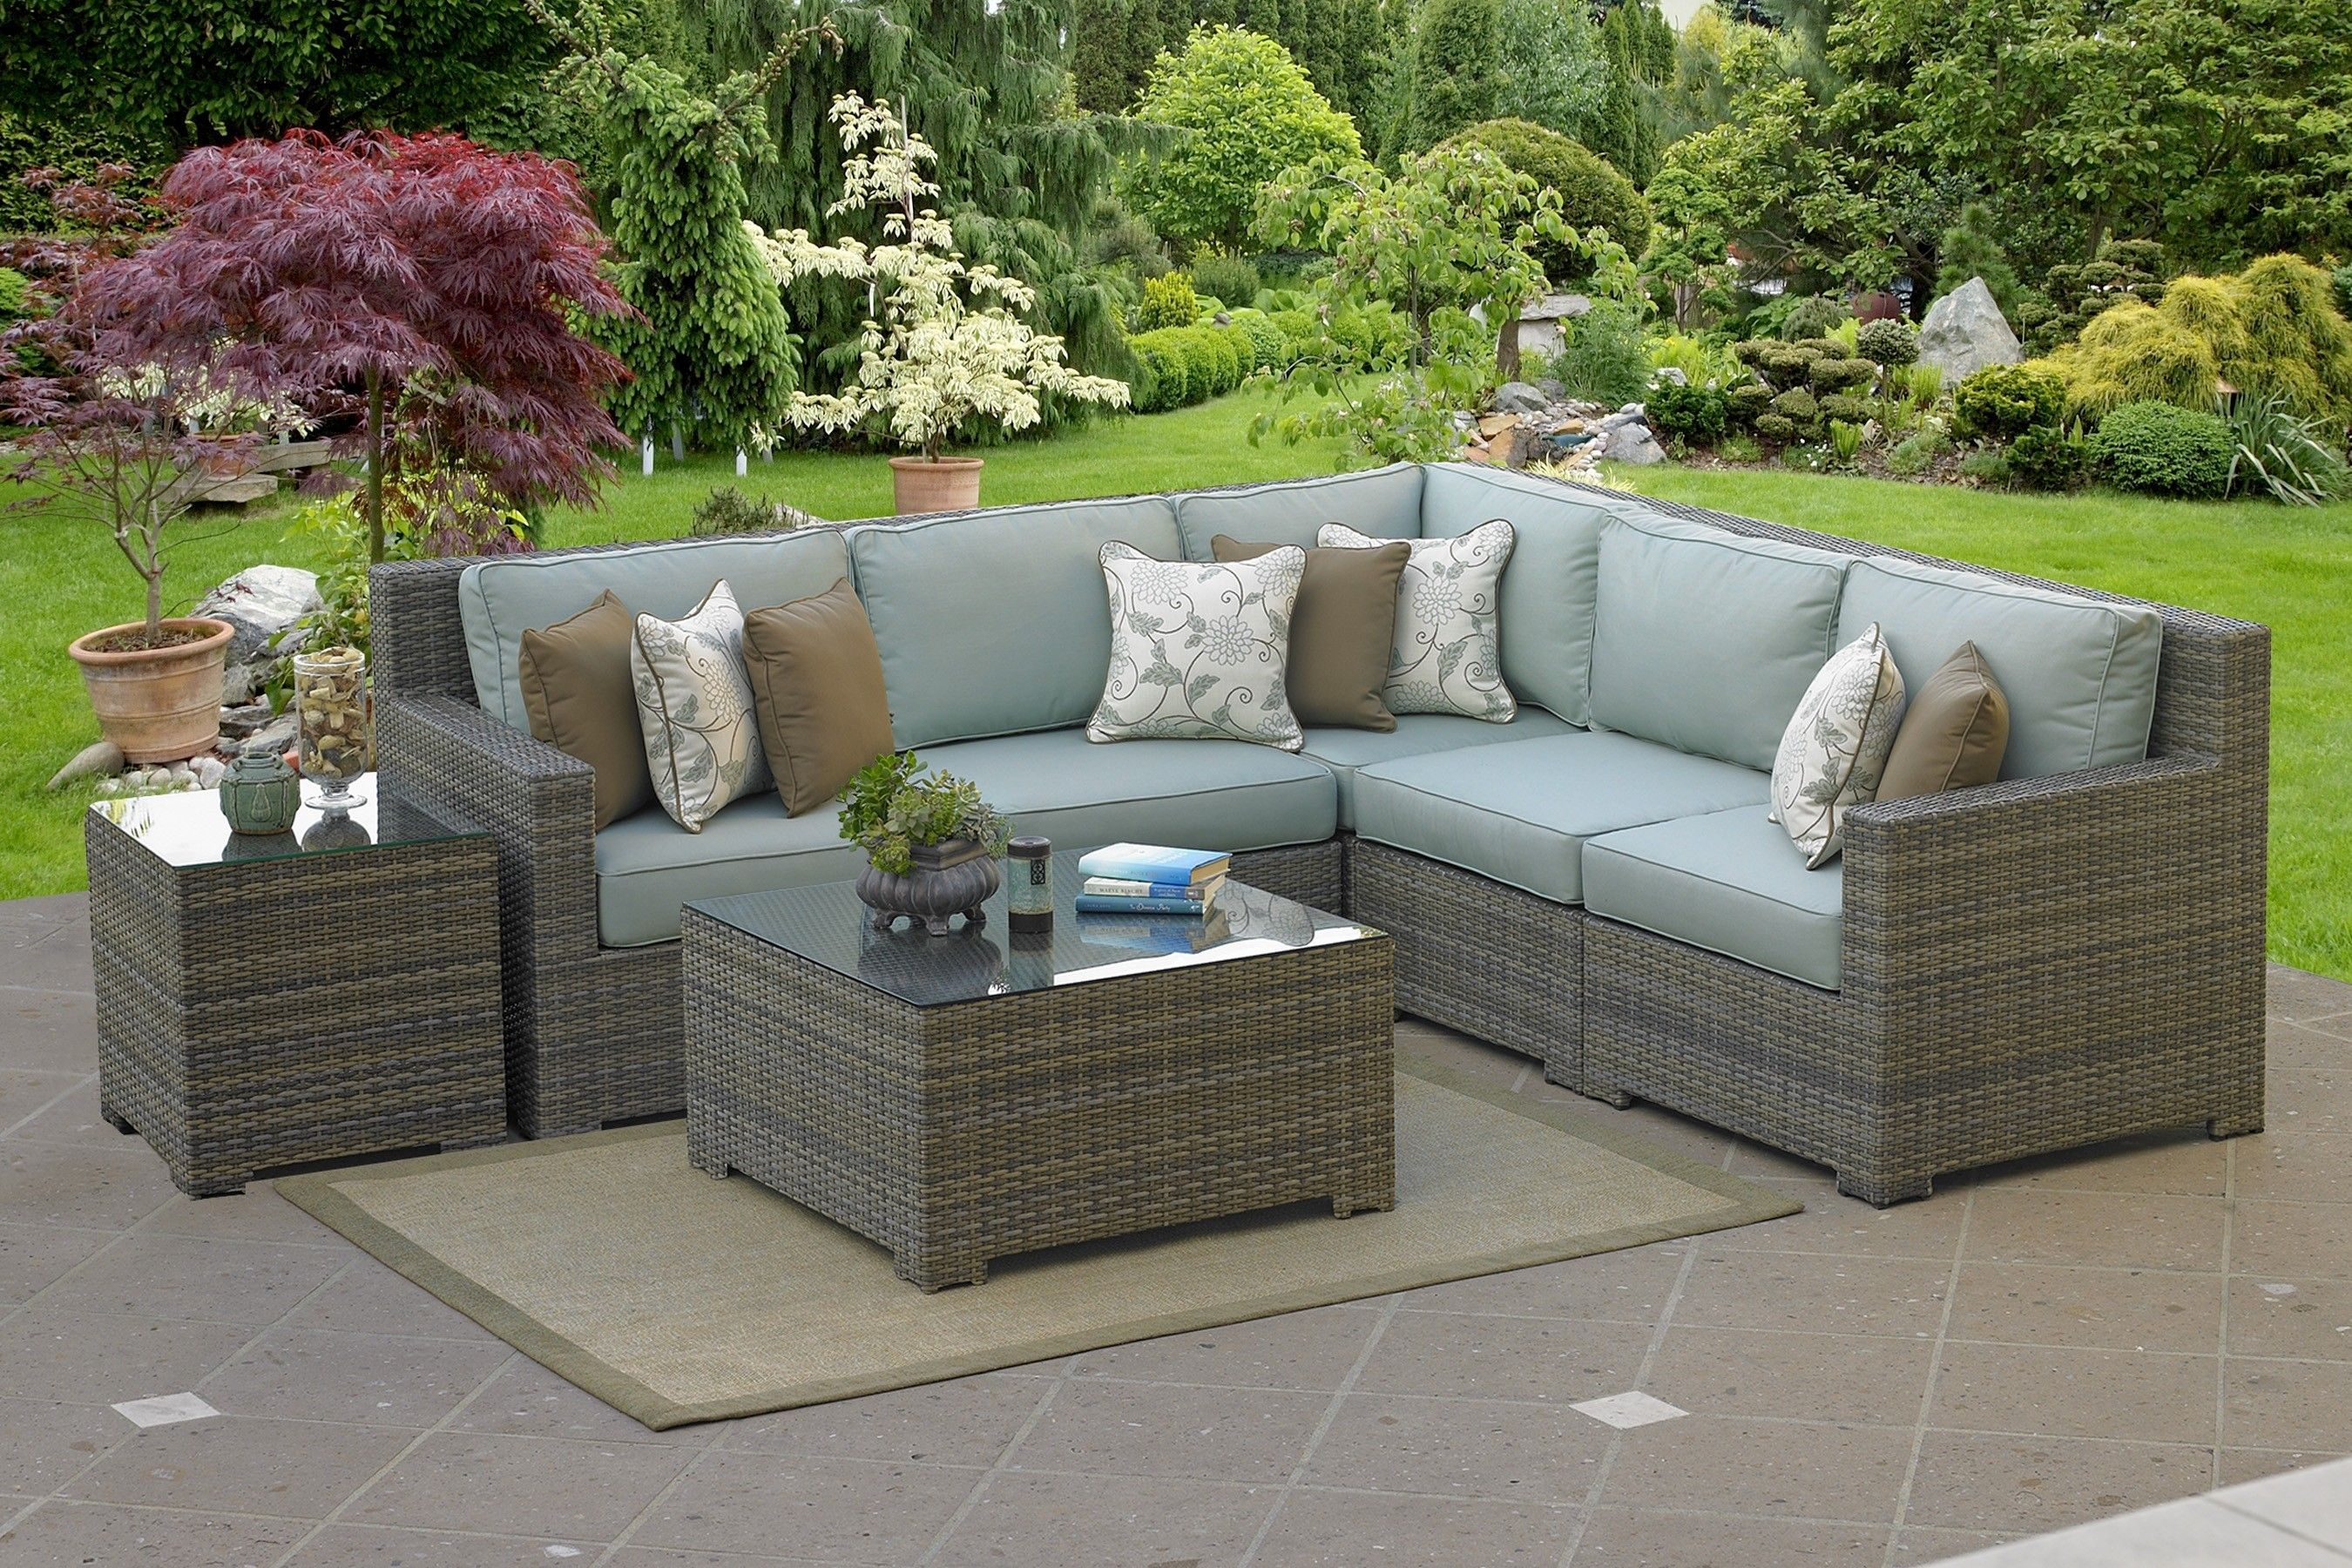 High Back Sectional Sofa | L Shaped Outdoor Sectional ... on Hhh Outdoor Living  id=13256